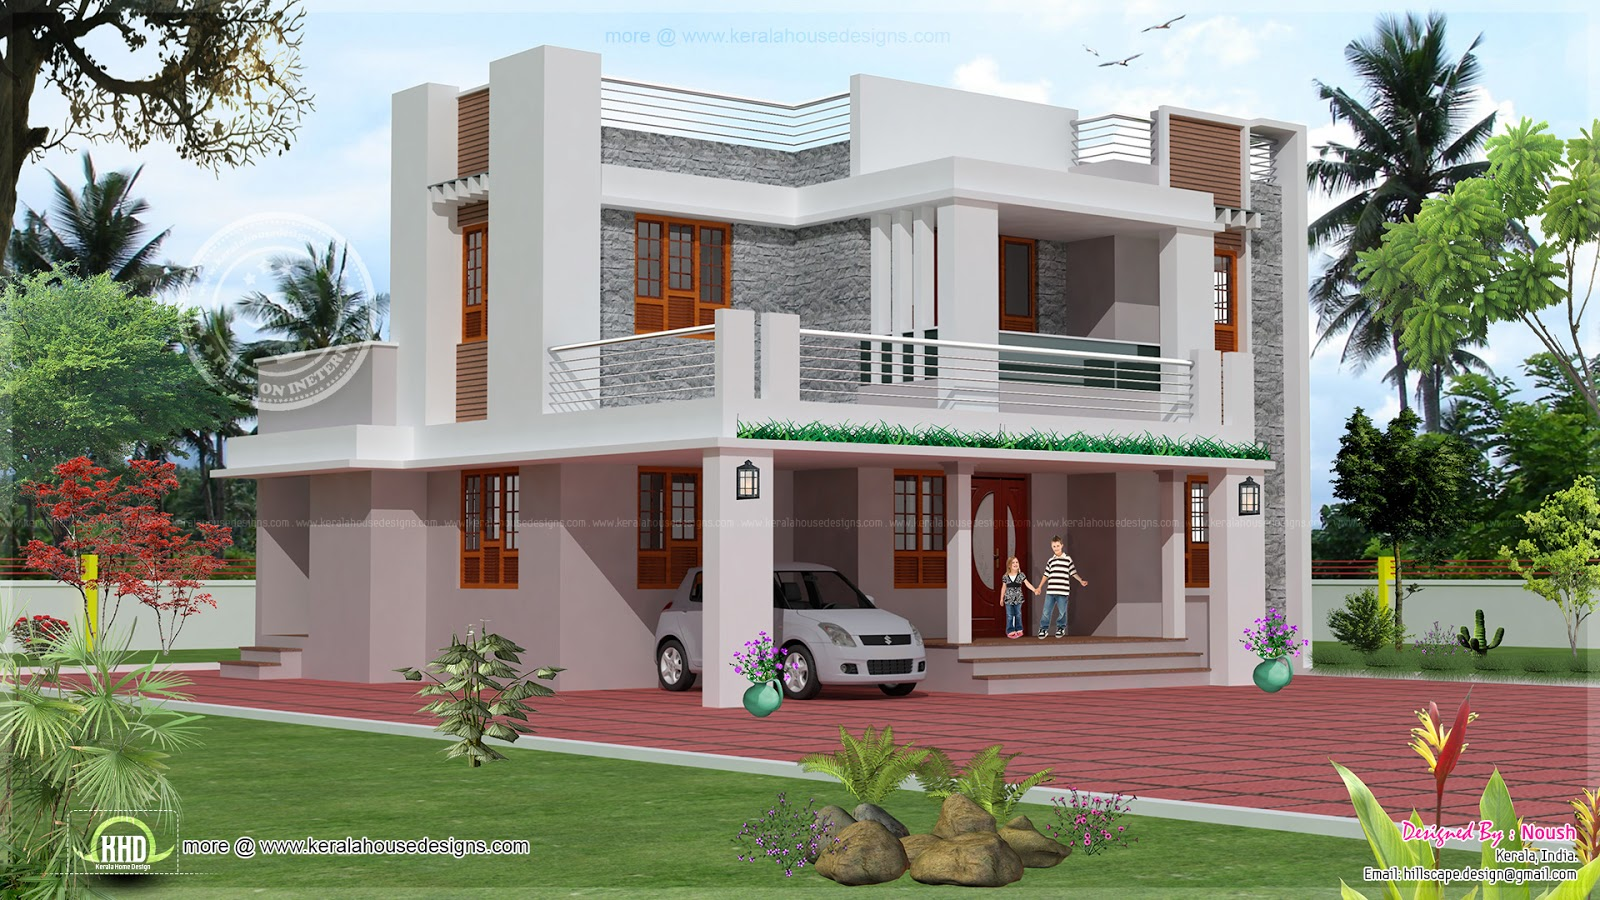 4 bedroom 2 story house exterior design home kerala plans for Outside design for home